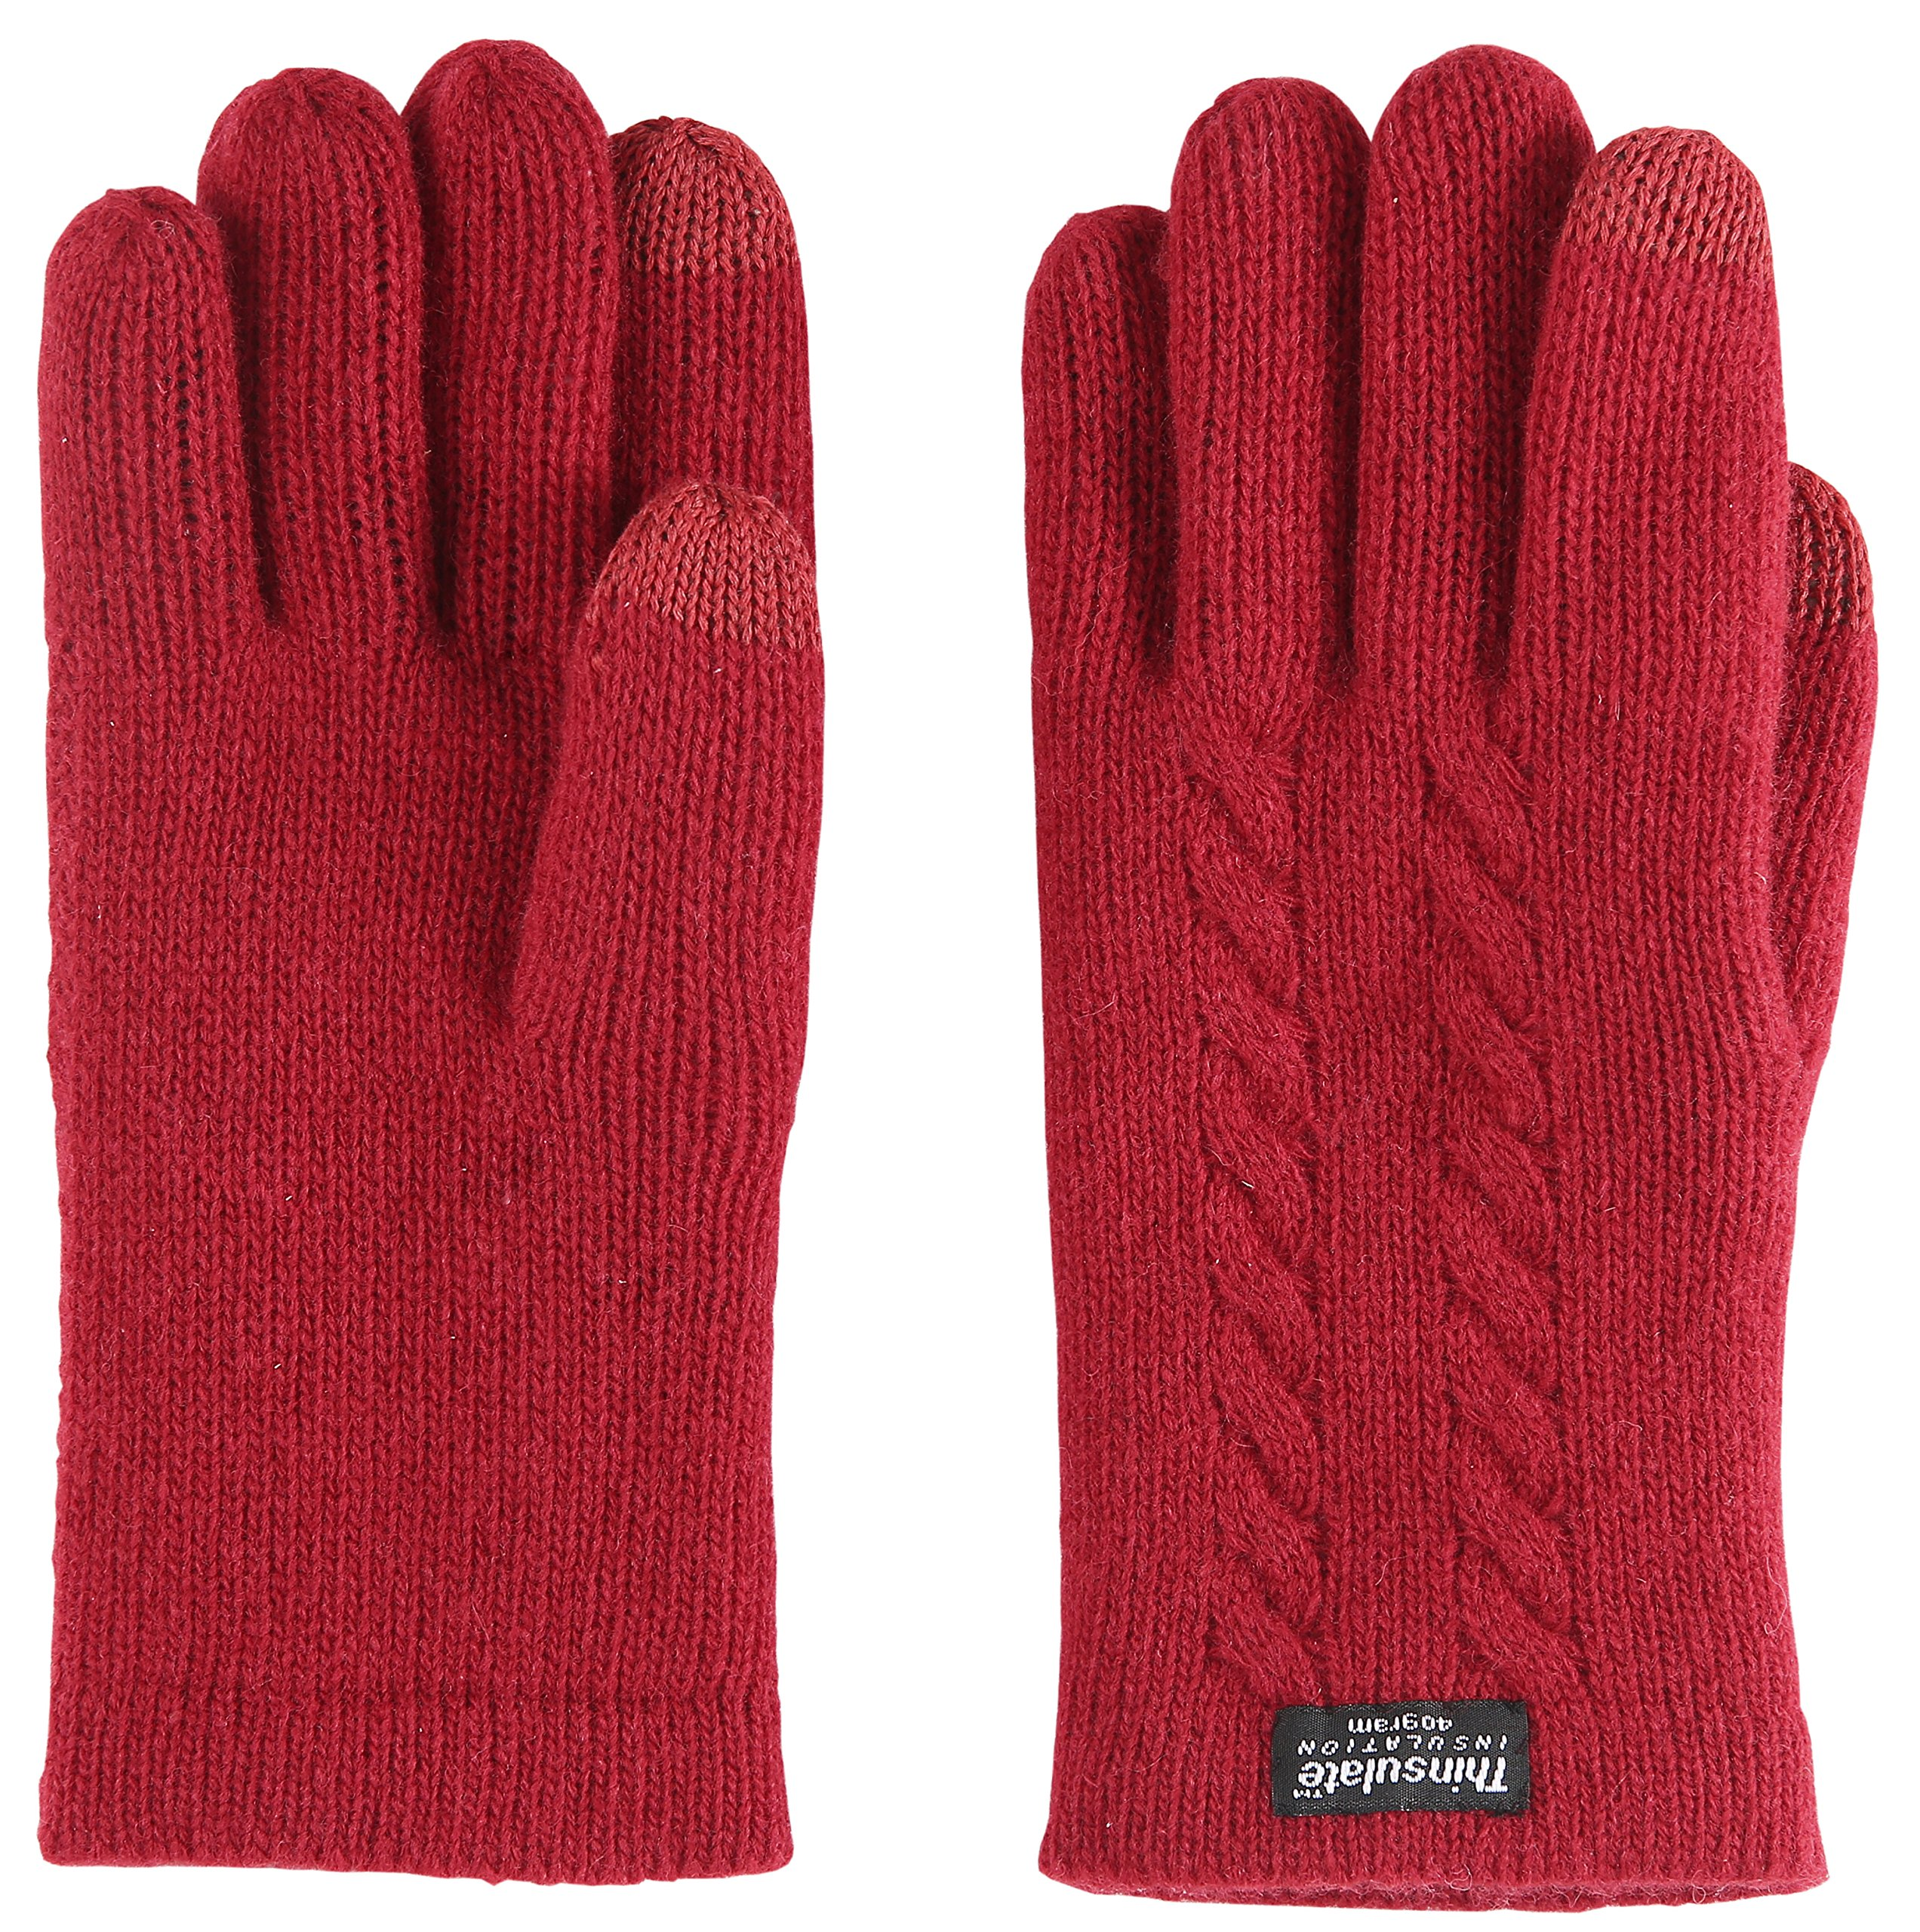 Bruceriver Ladie's Pure Wool Knit Gloves with Thinsulate Lining and Cable design Size S(Red Touchscreen) by BRUCERIVER